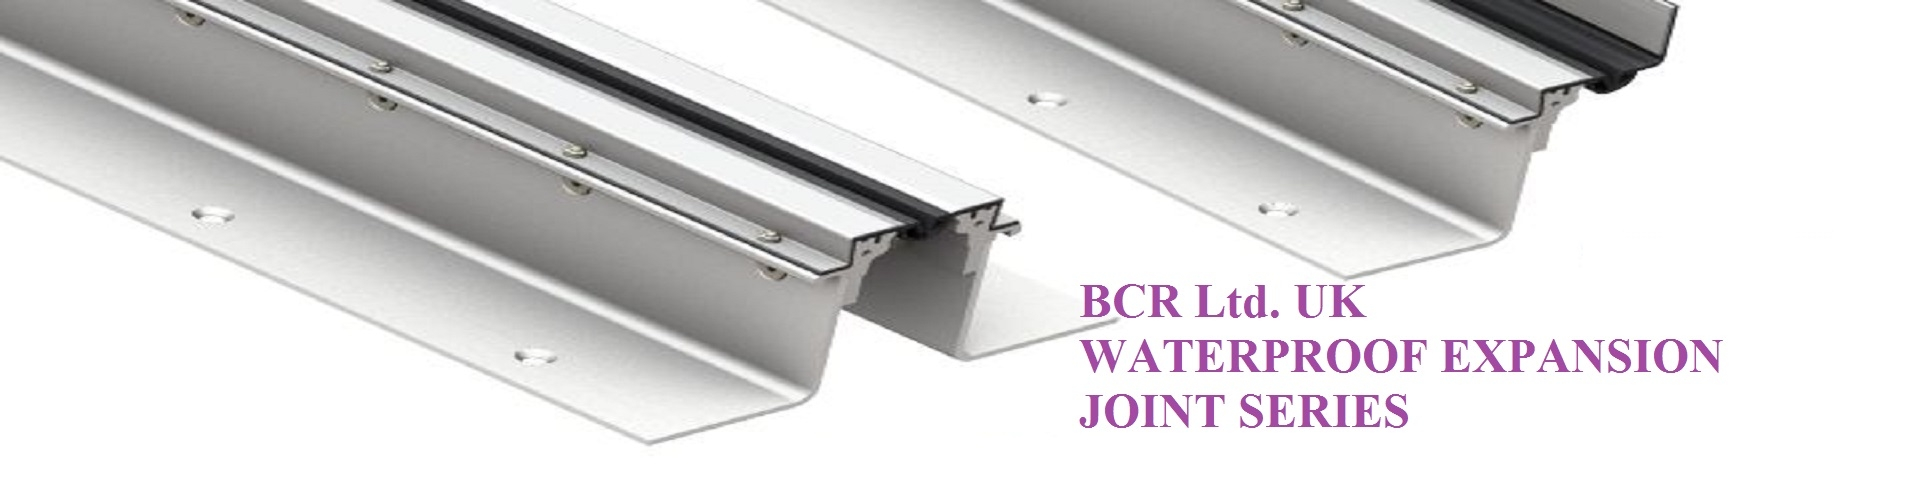 BCR WATERPROOF HEAVY DUTY PARKING EXPANSION JOINT